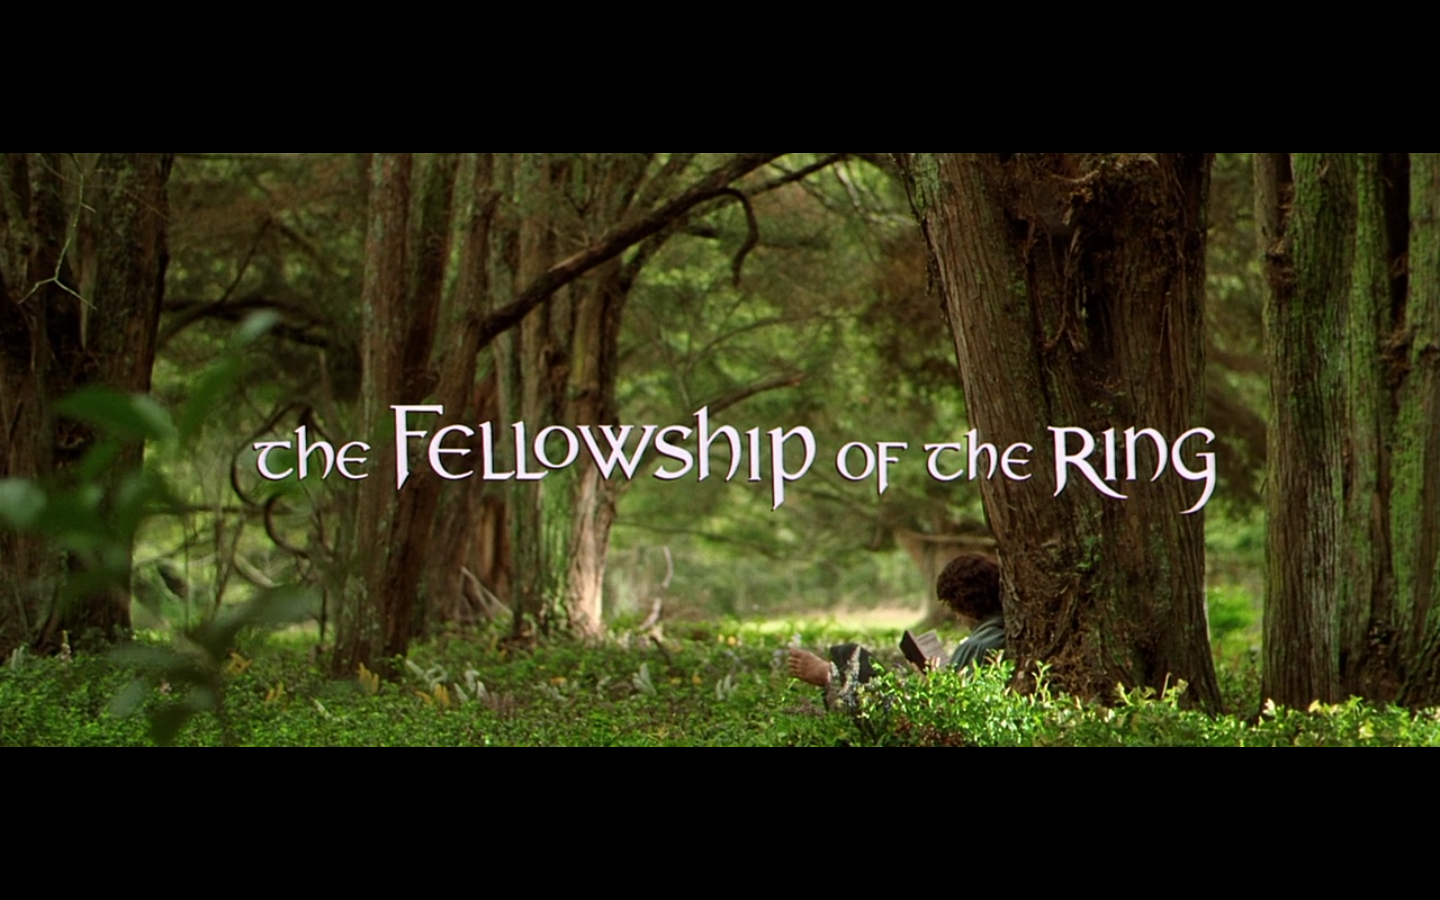 Is The Fellowship Of The Ring Hard To Read